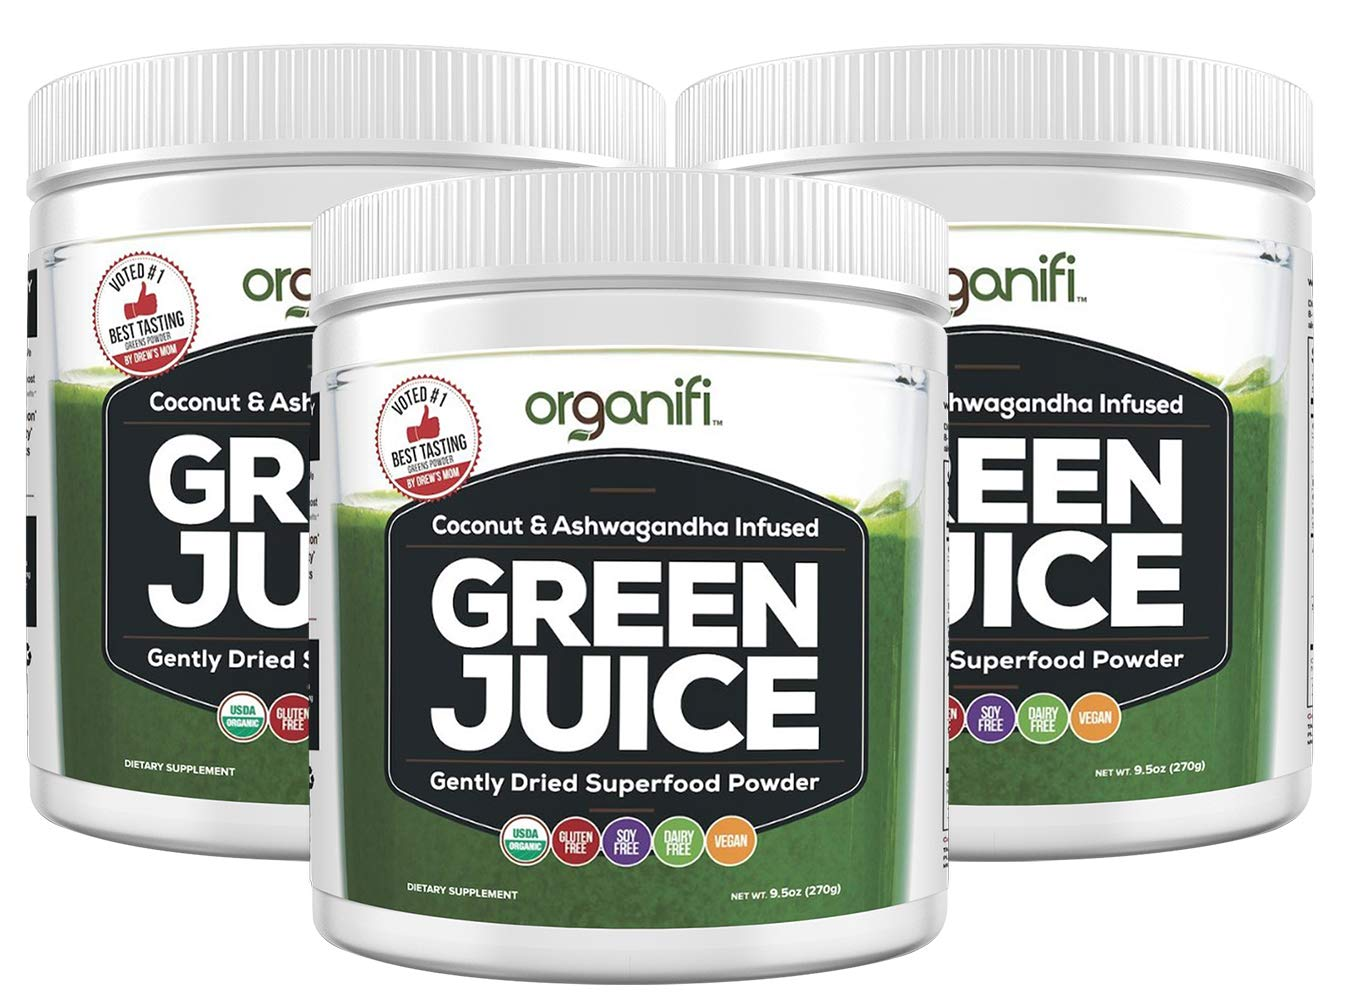 Organifi: Green Juice - Organic Superfood Supplement Powder - 30 Day Supply - USDA Certified Organic Vegan Greens - Hydrates and Revitalizes - Boost Immune System - Support Relaxation and Sleep